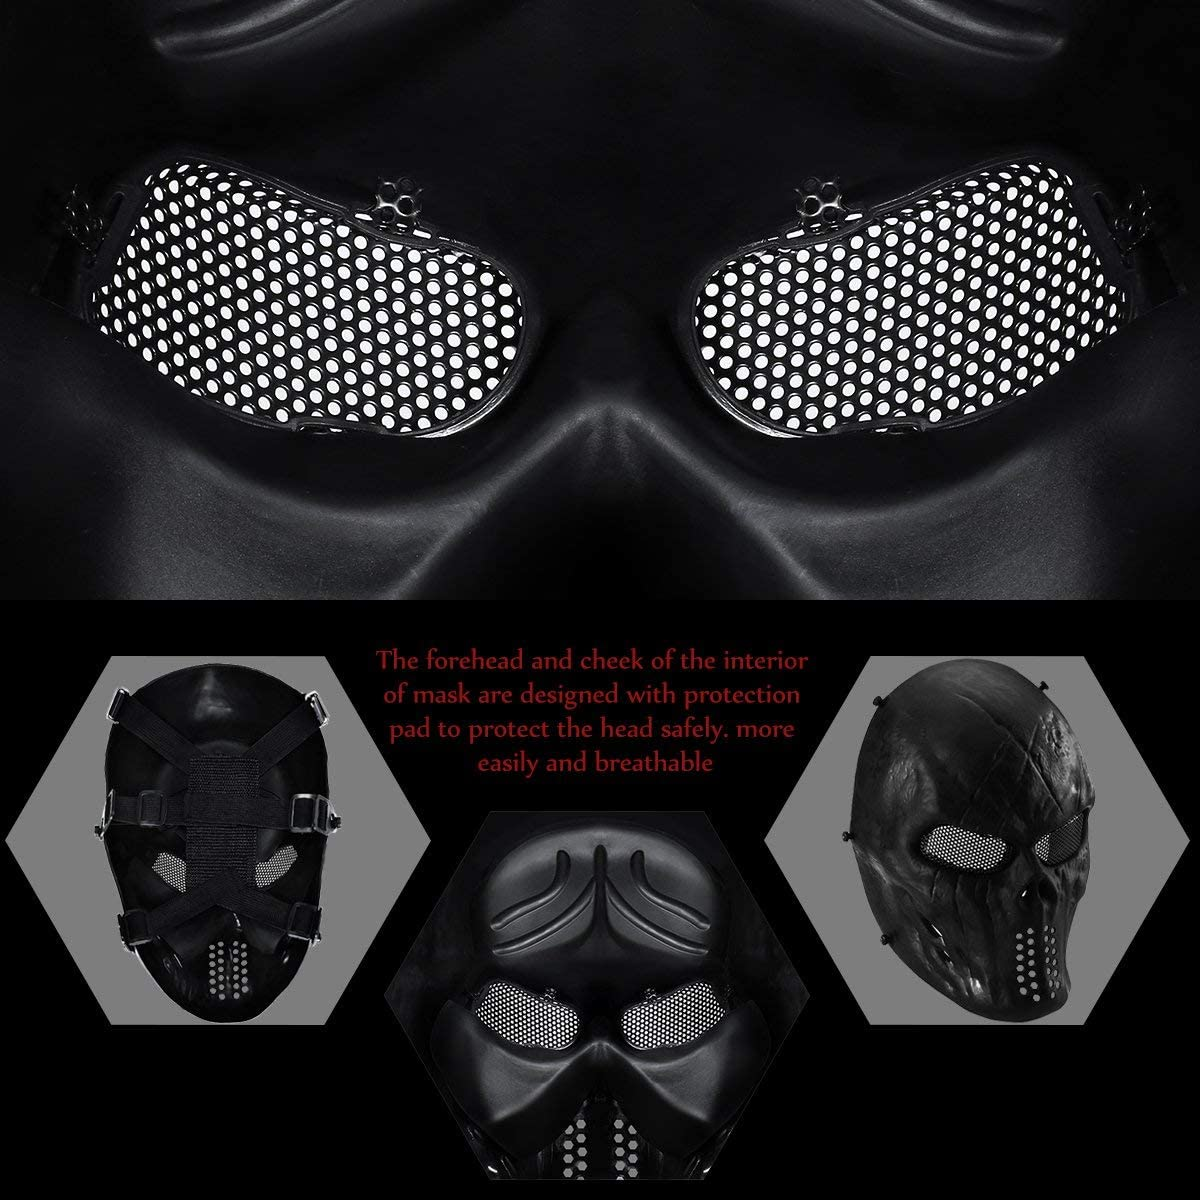 Halloween Mask Full Face Skull Mask Tactical Mask with Metal Mesh Eyes Protection (Black)